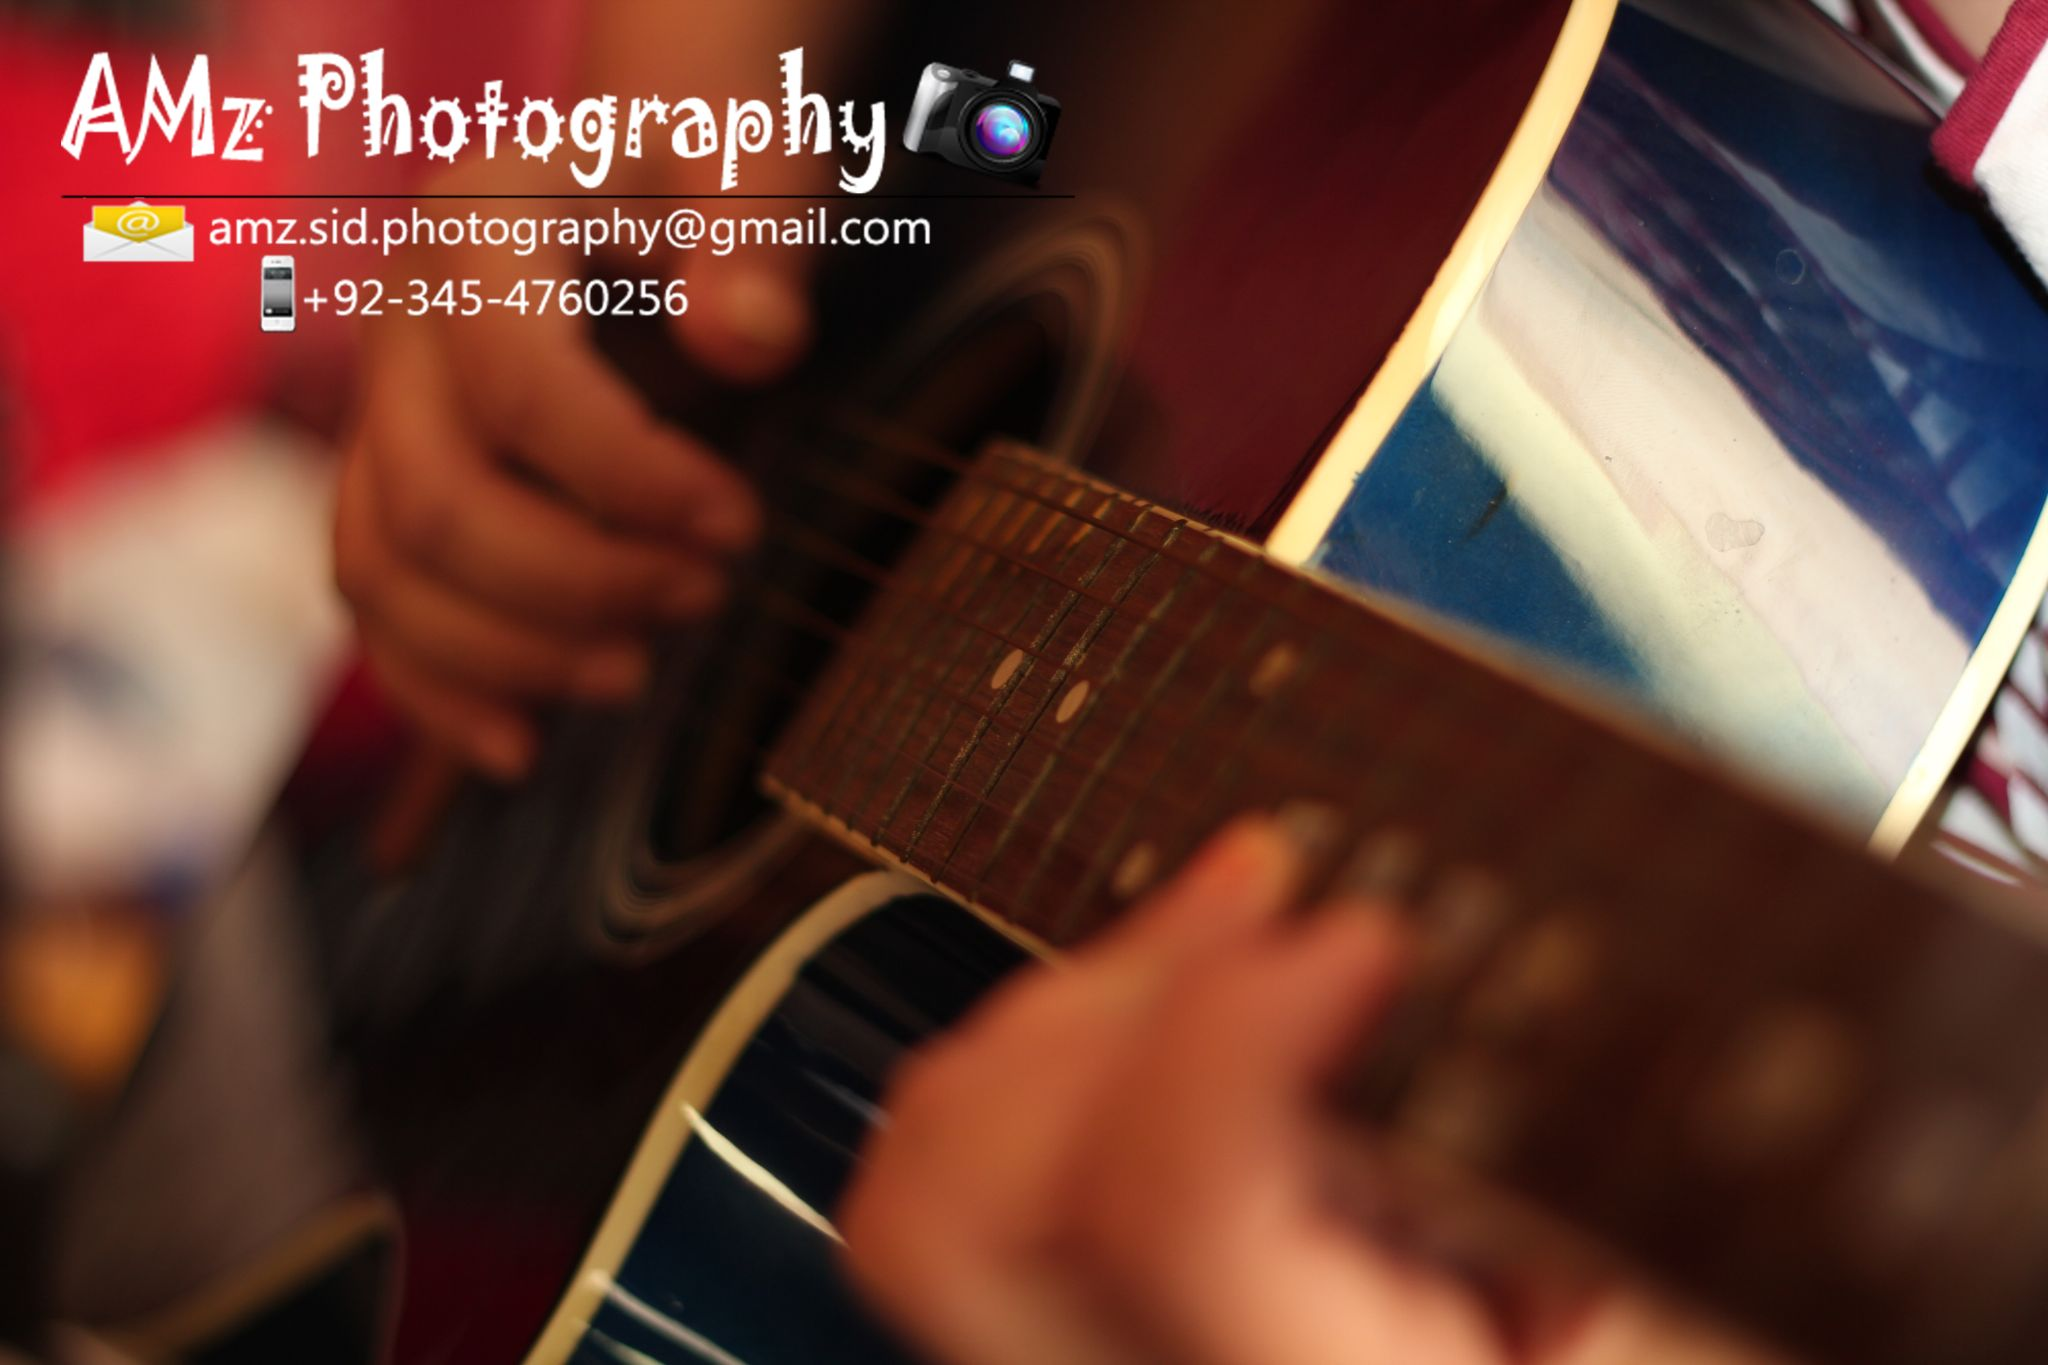 Guitar chords by siddiqui.aaminah